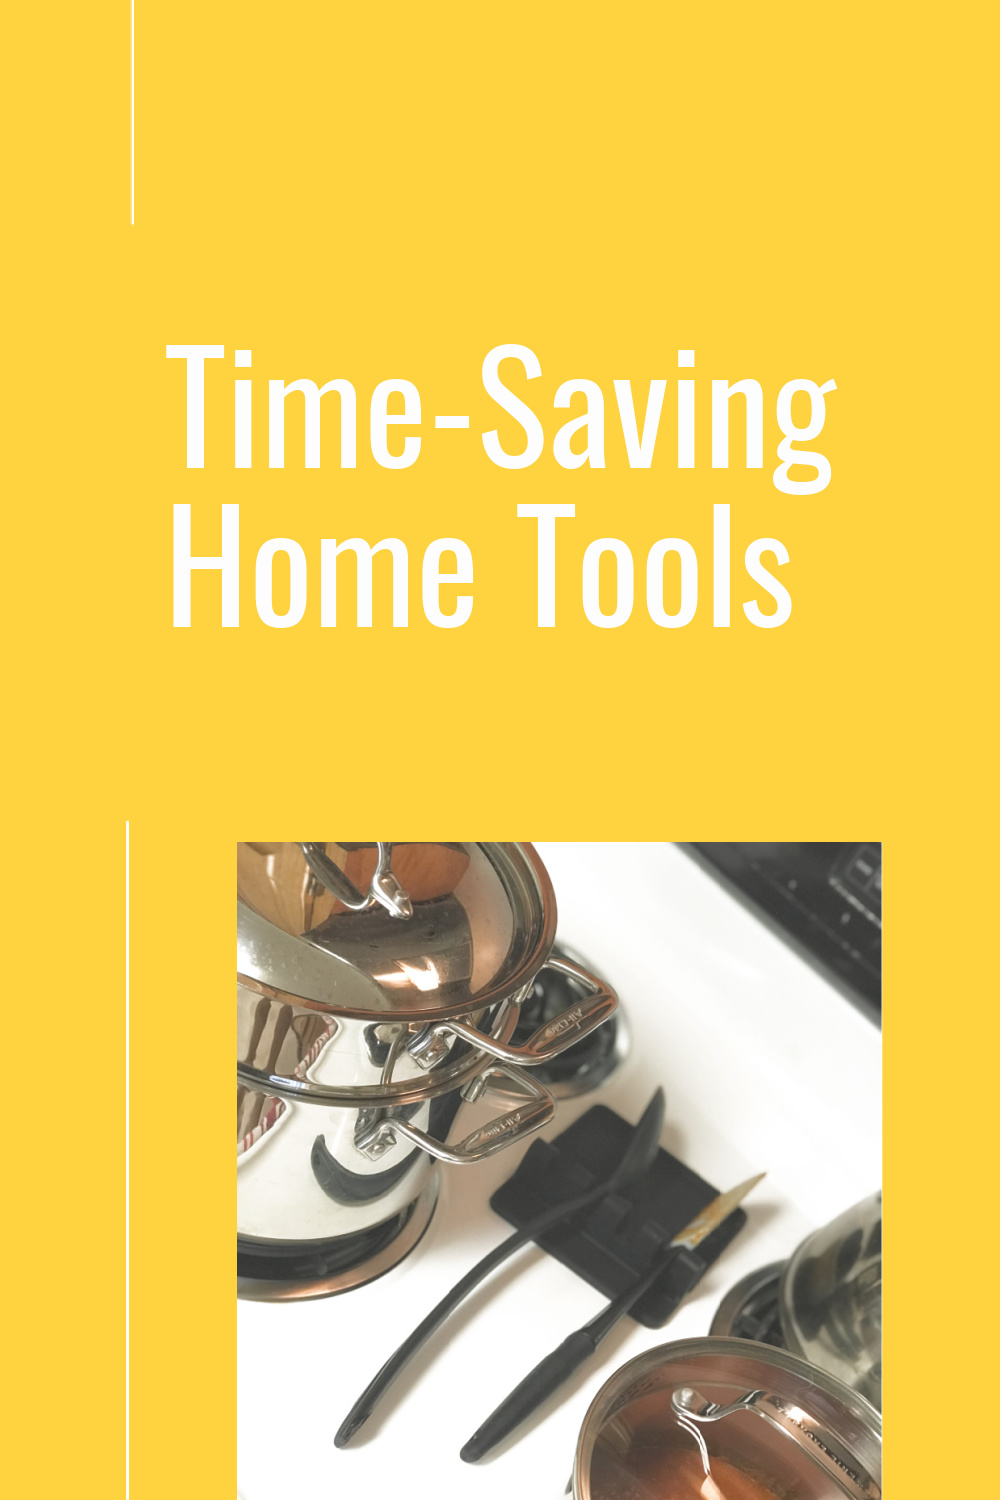 You need these great time saving kitchen tools to save time and achieve balance each day. So handy!